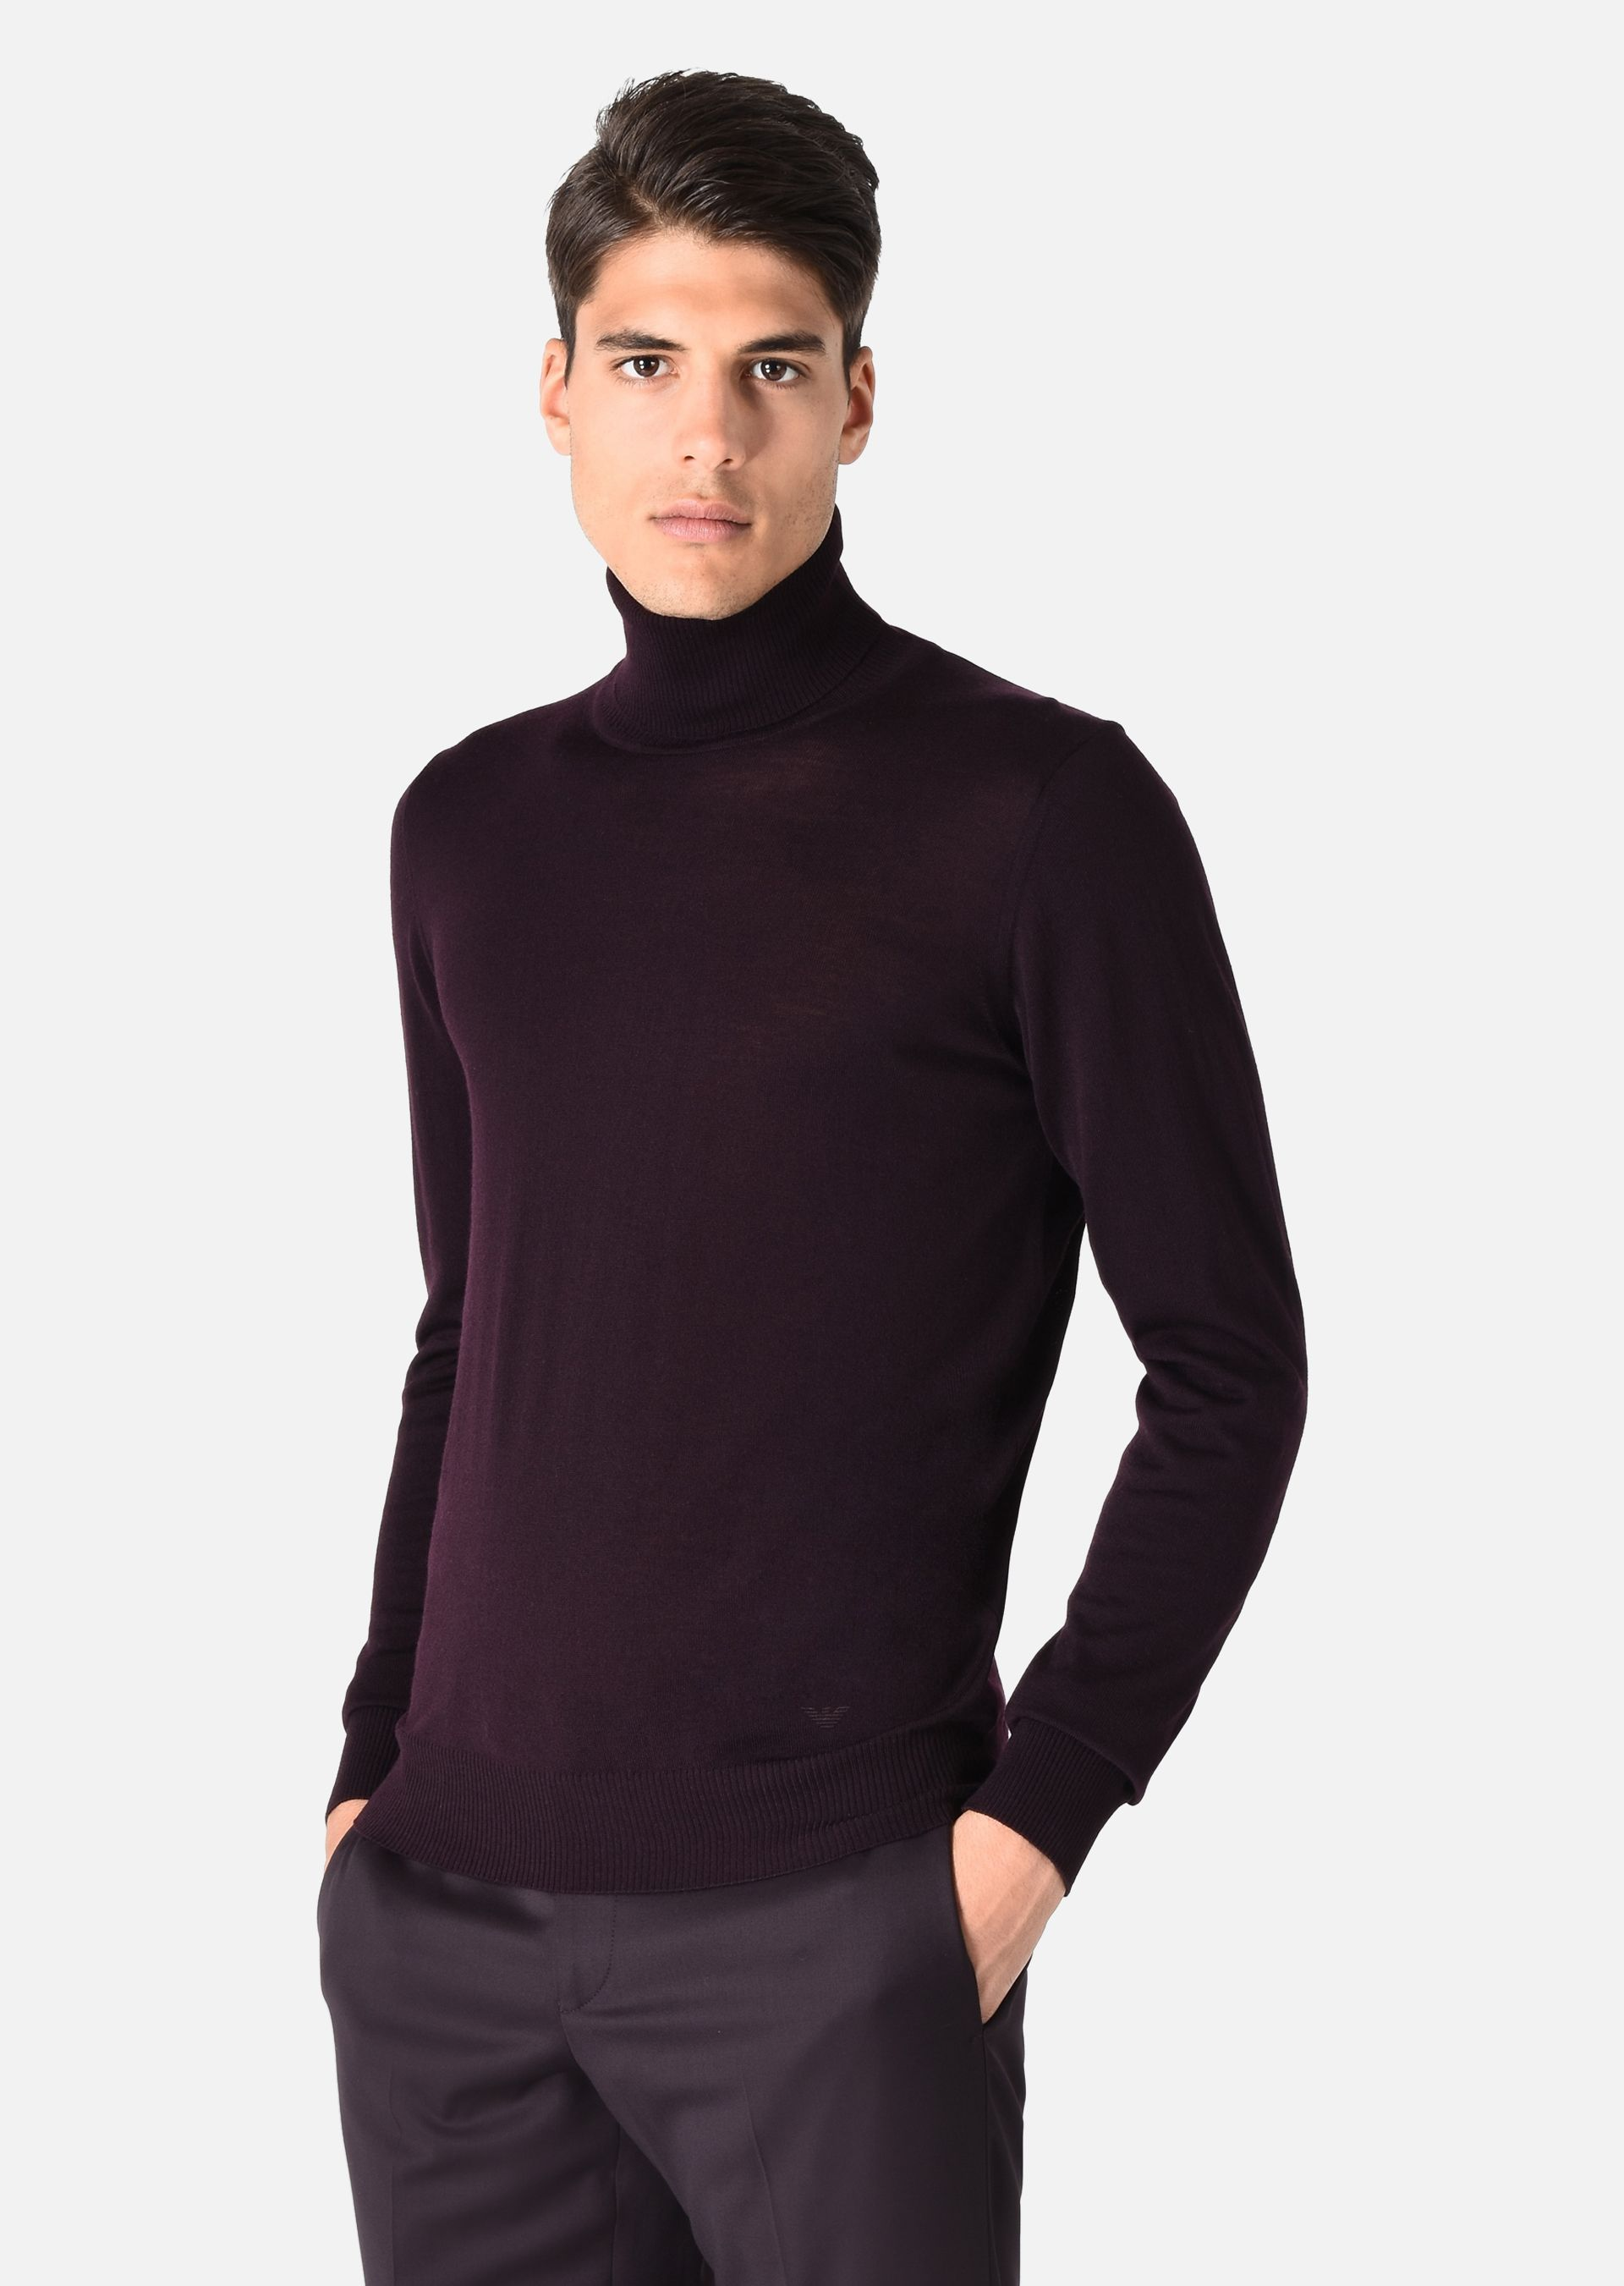 TURTLENECK SWEATER IN VIRGIN WOOL for Men | Emporio Armani